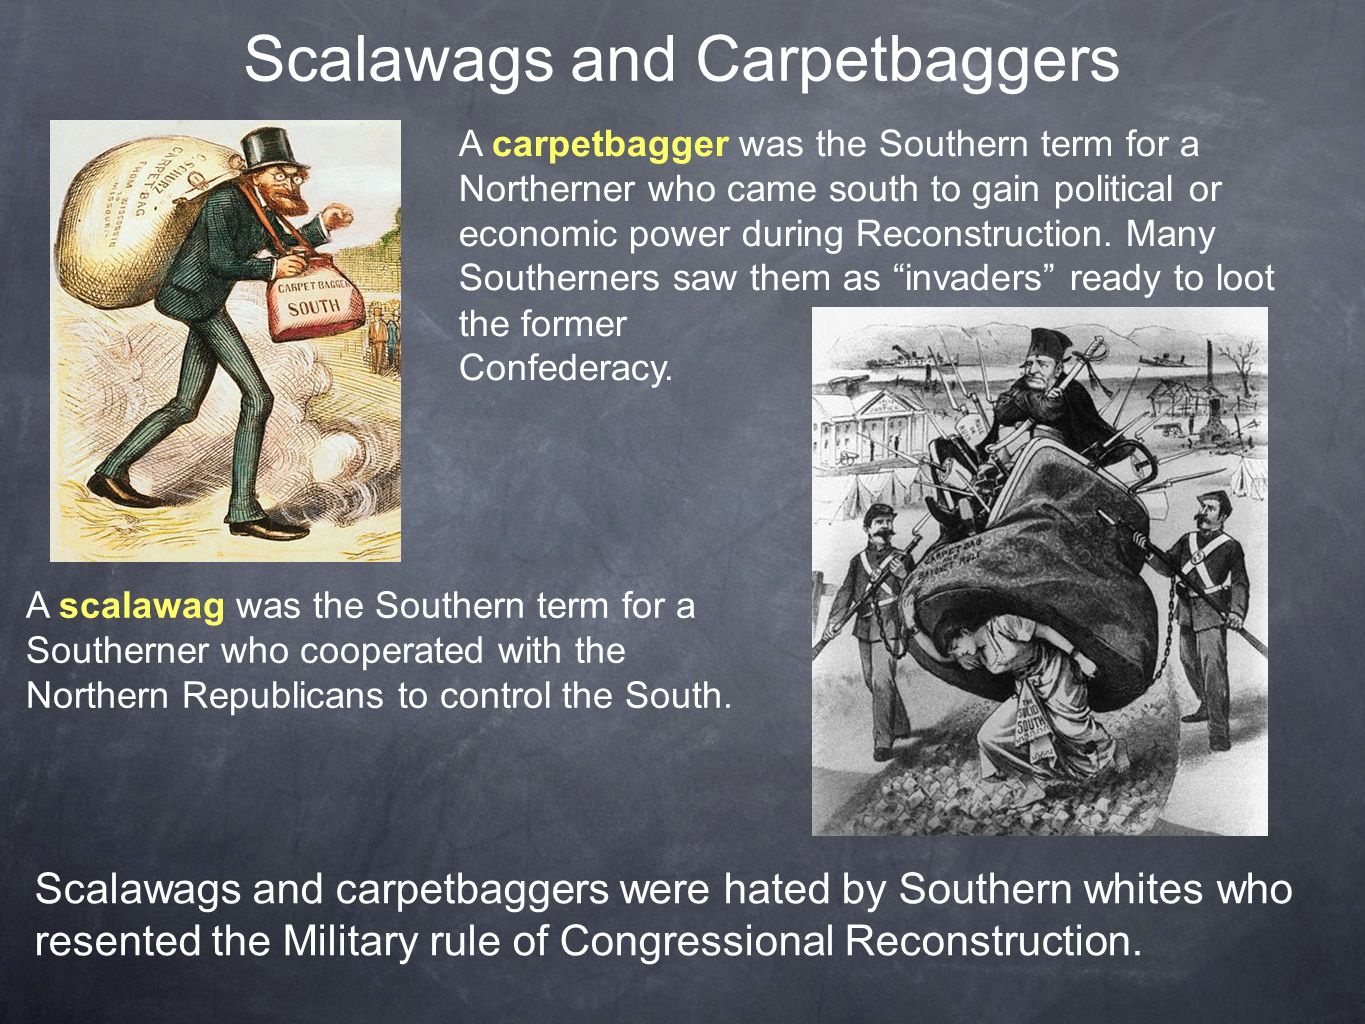 Why Did Southerners Resent Both Carpetbaggers And Scalawags